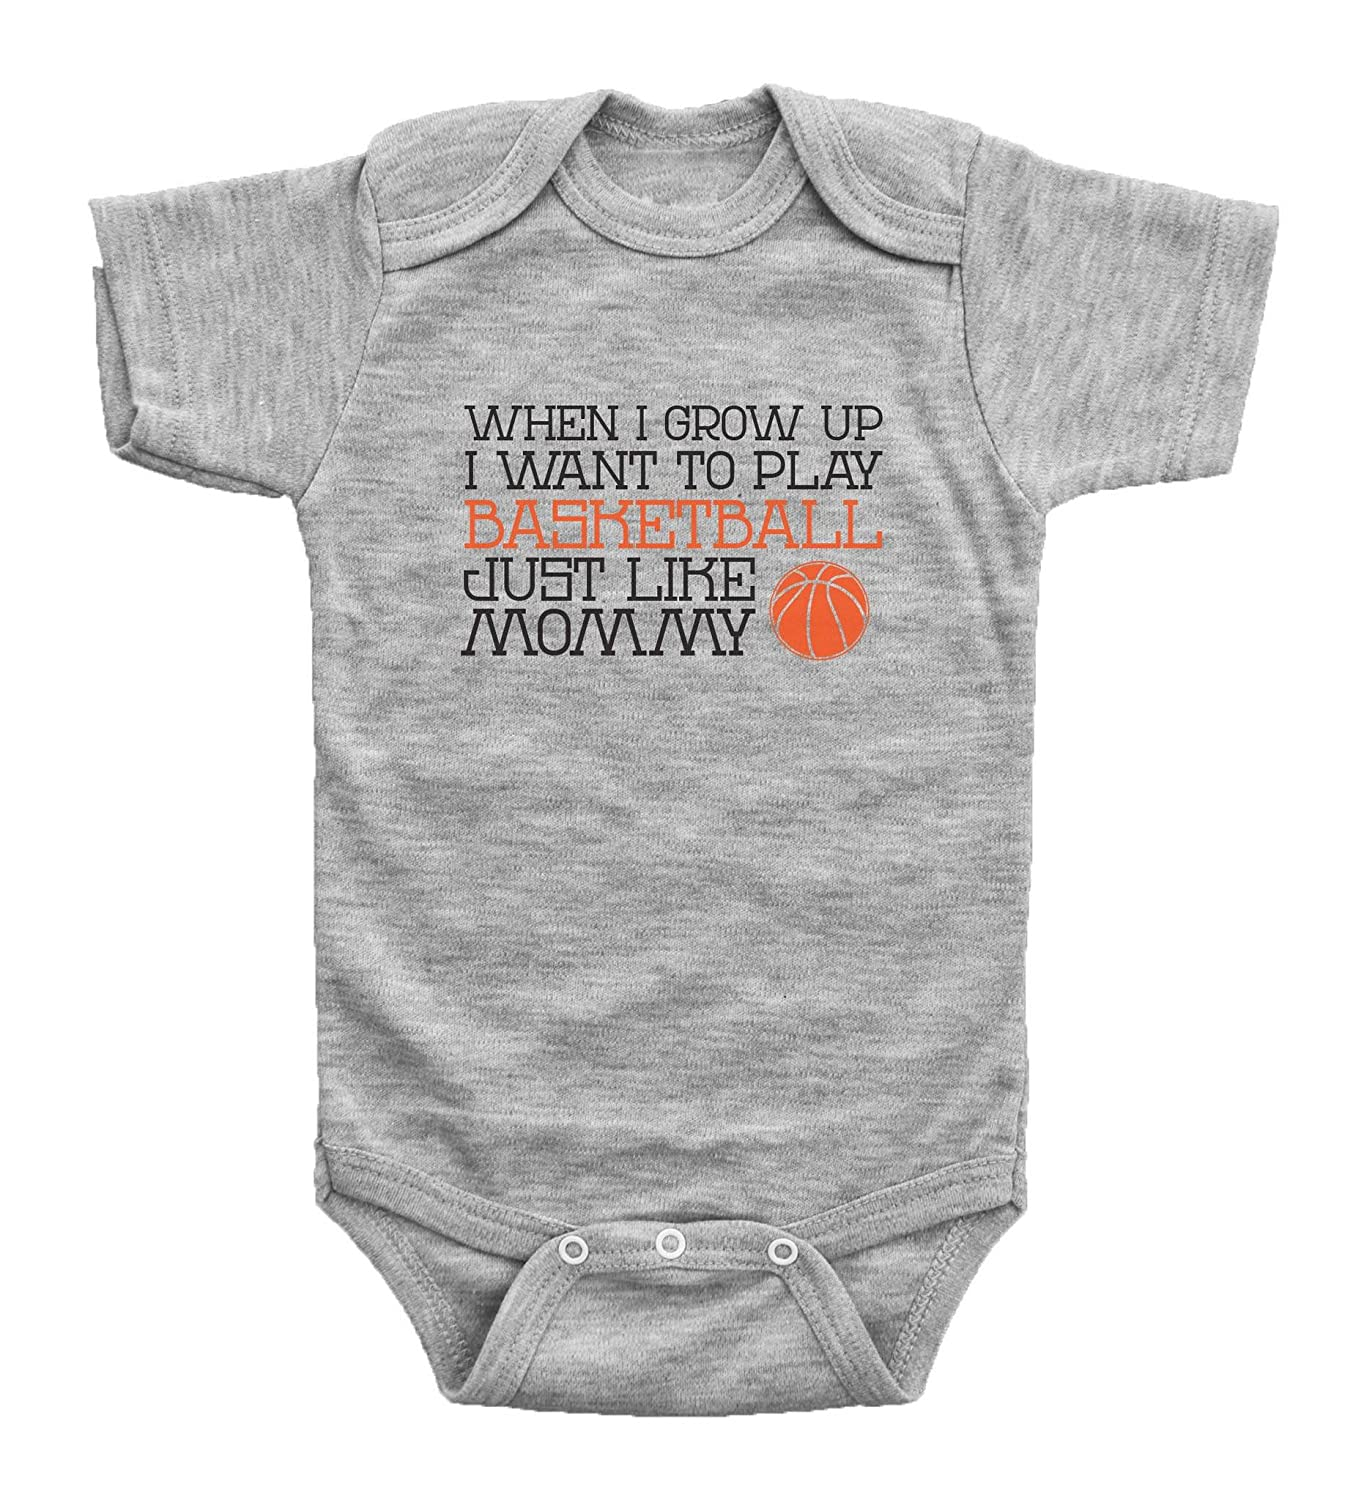 0d3e3b42 Amazon.com: InkCallies Play Basketball Like Mommy, Funny Basketball  Bodysuit for Kids, Cute Newborn Outfits for Sports Fans, Shower Gift:  Clothing